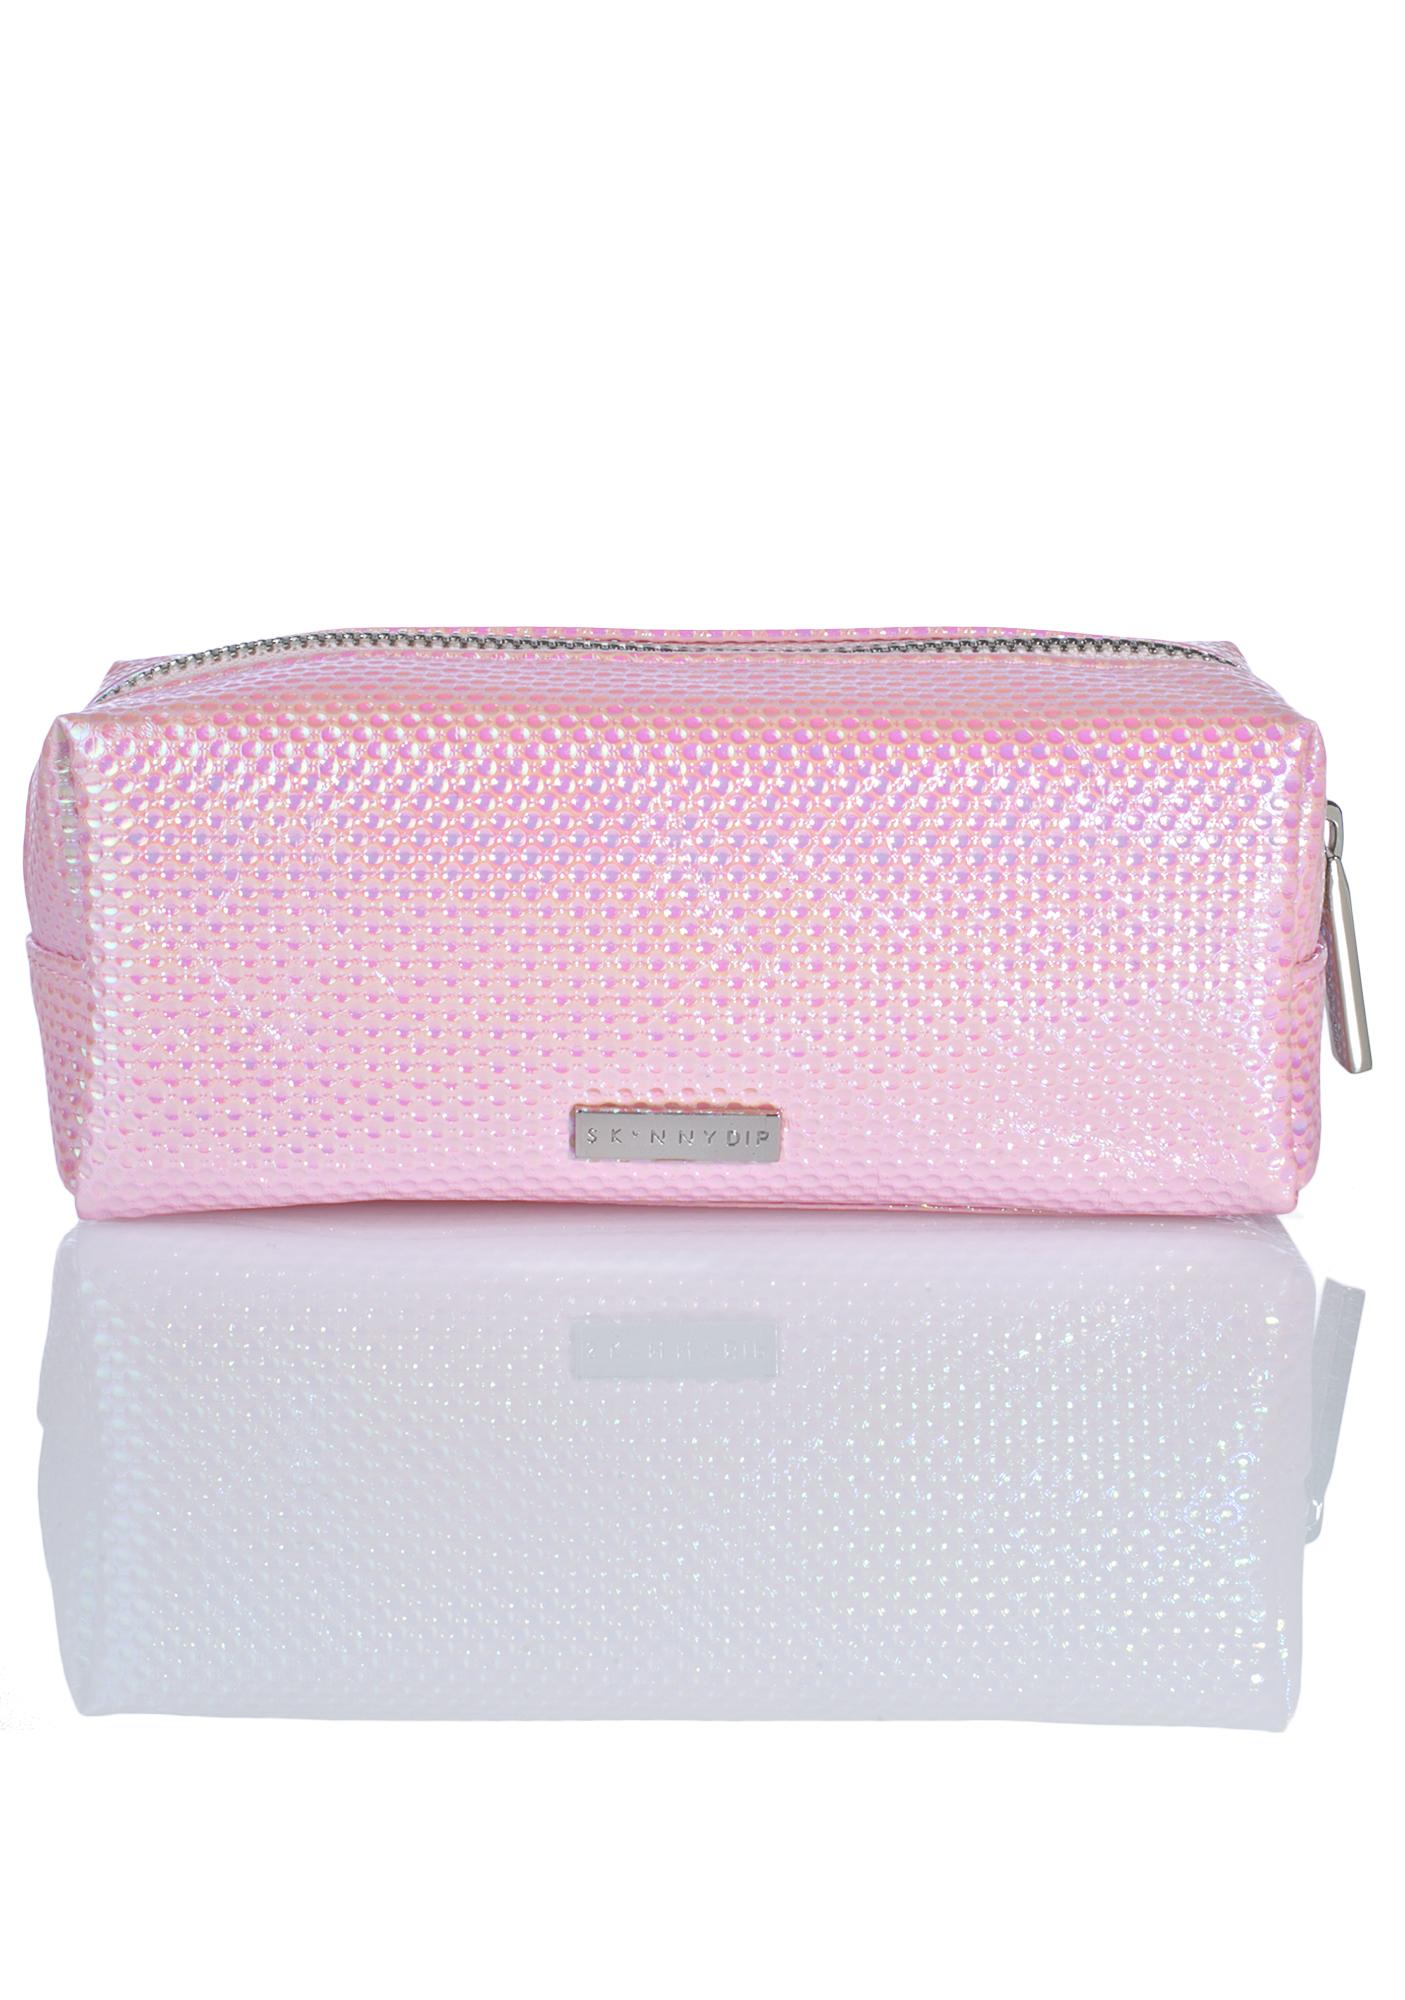 Skinnydip Bubblegum Small Makeup Bag